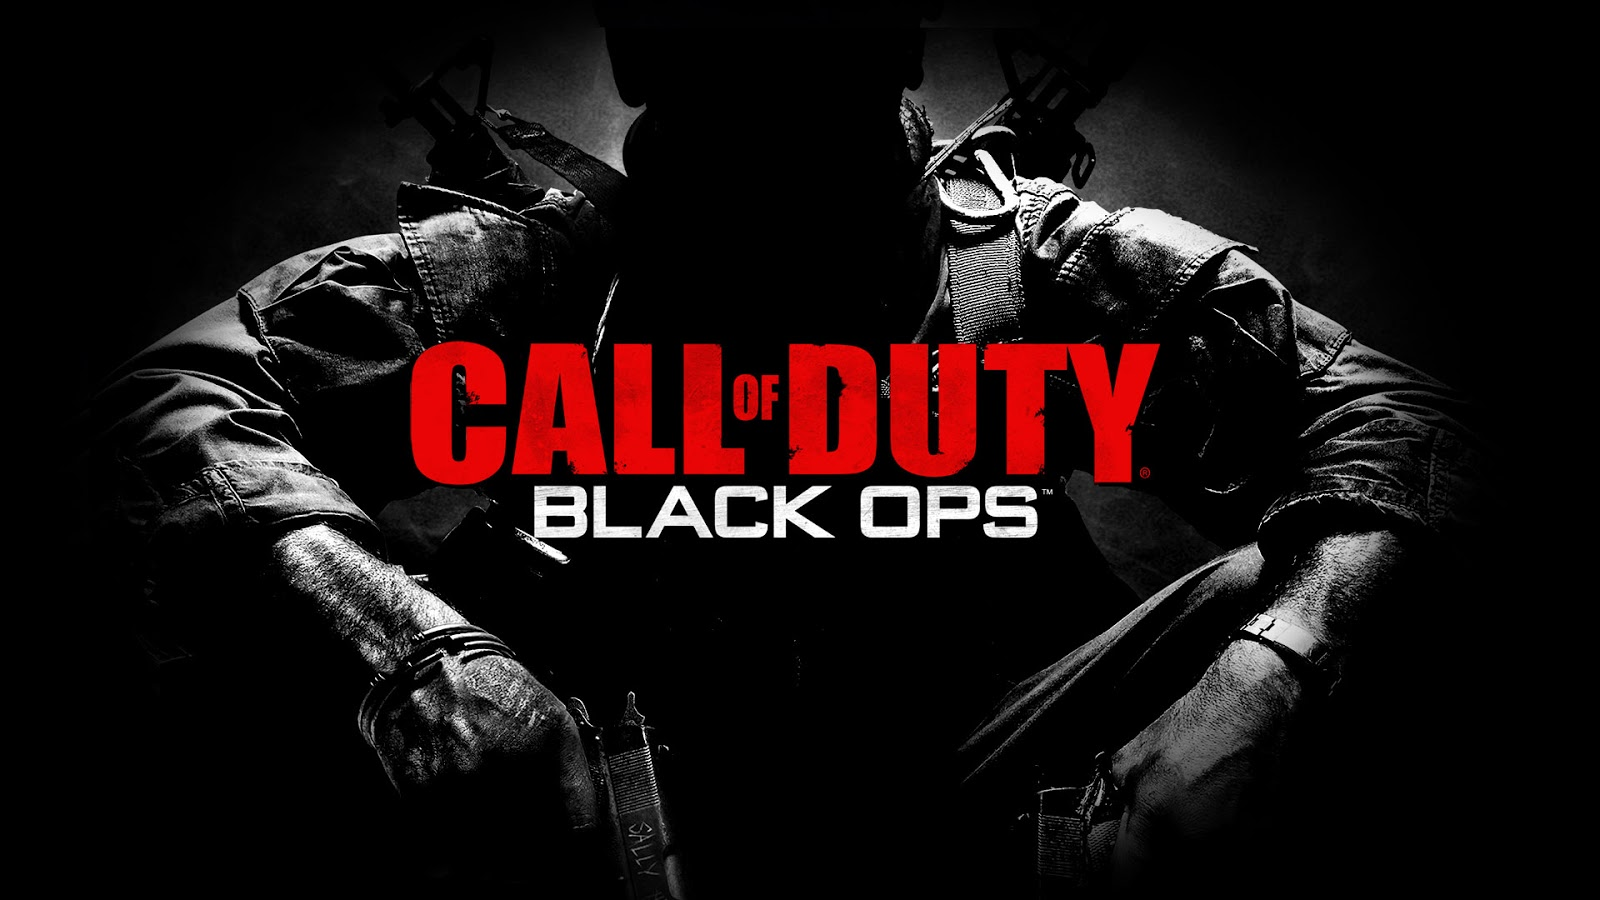 Call Of Duty Bo2 Wallpaper: HD WALLPAPERS: Call Of Duty Black Ops HD Wallpapers